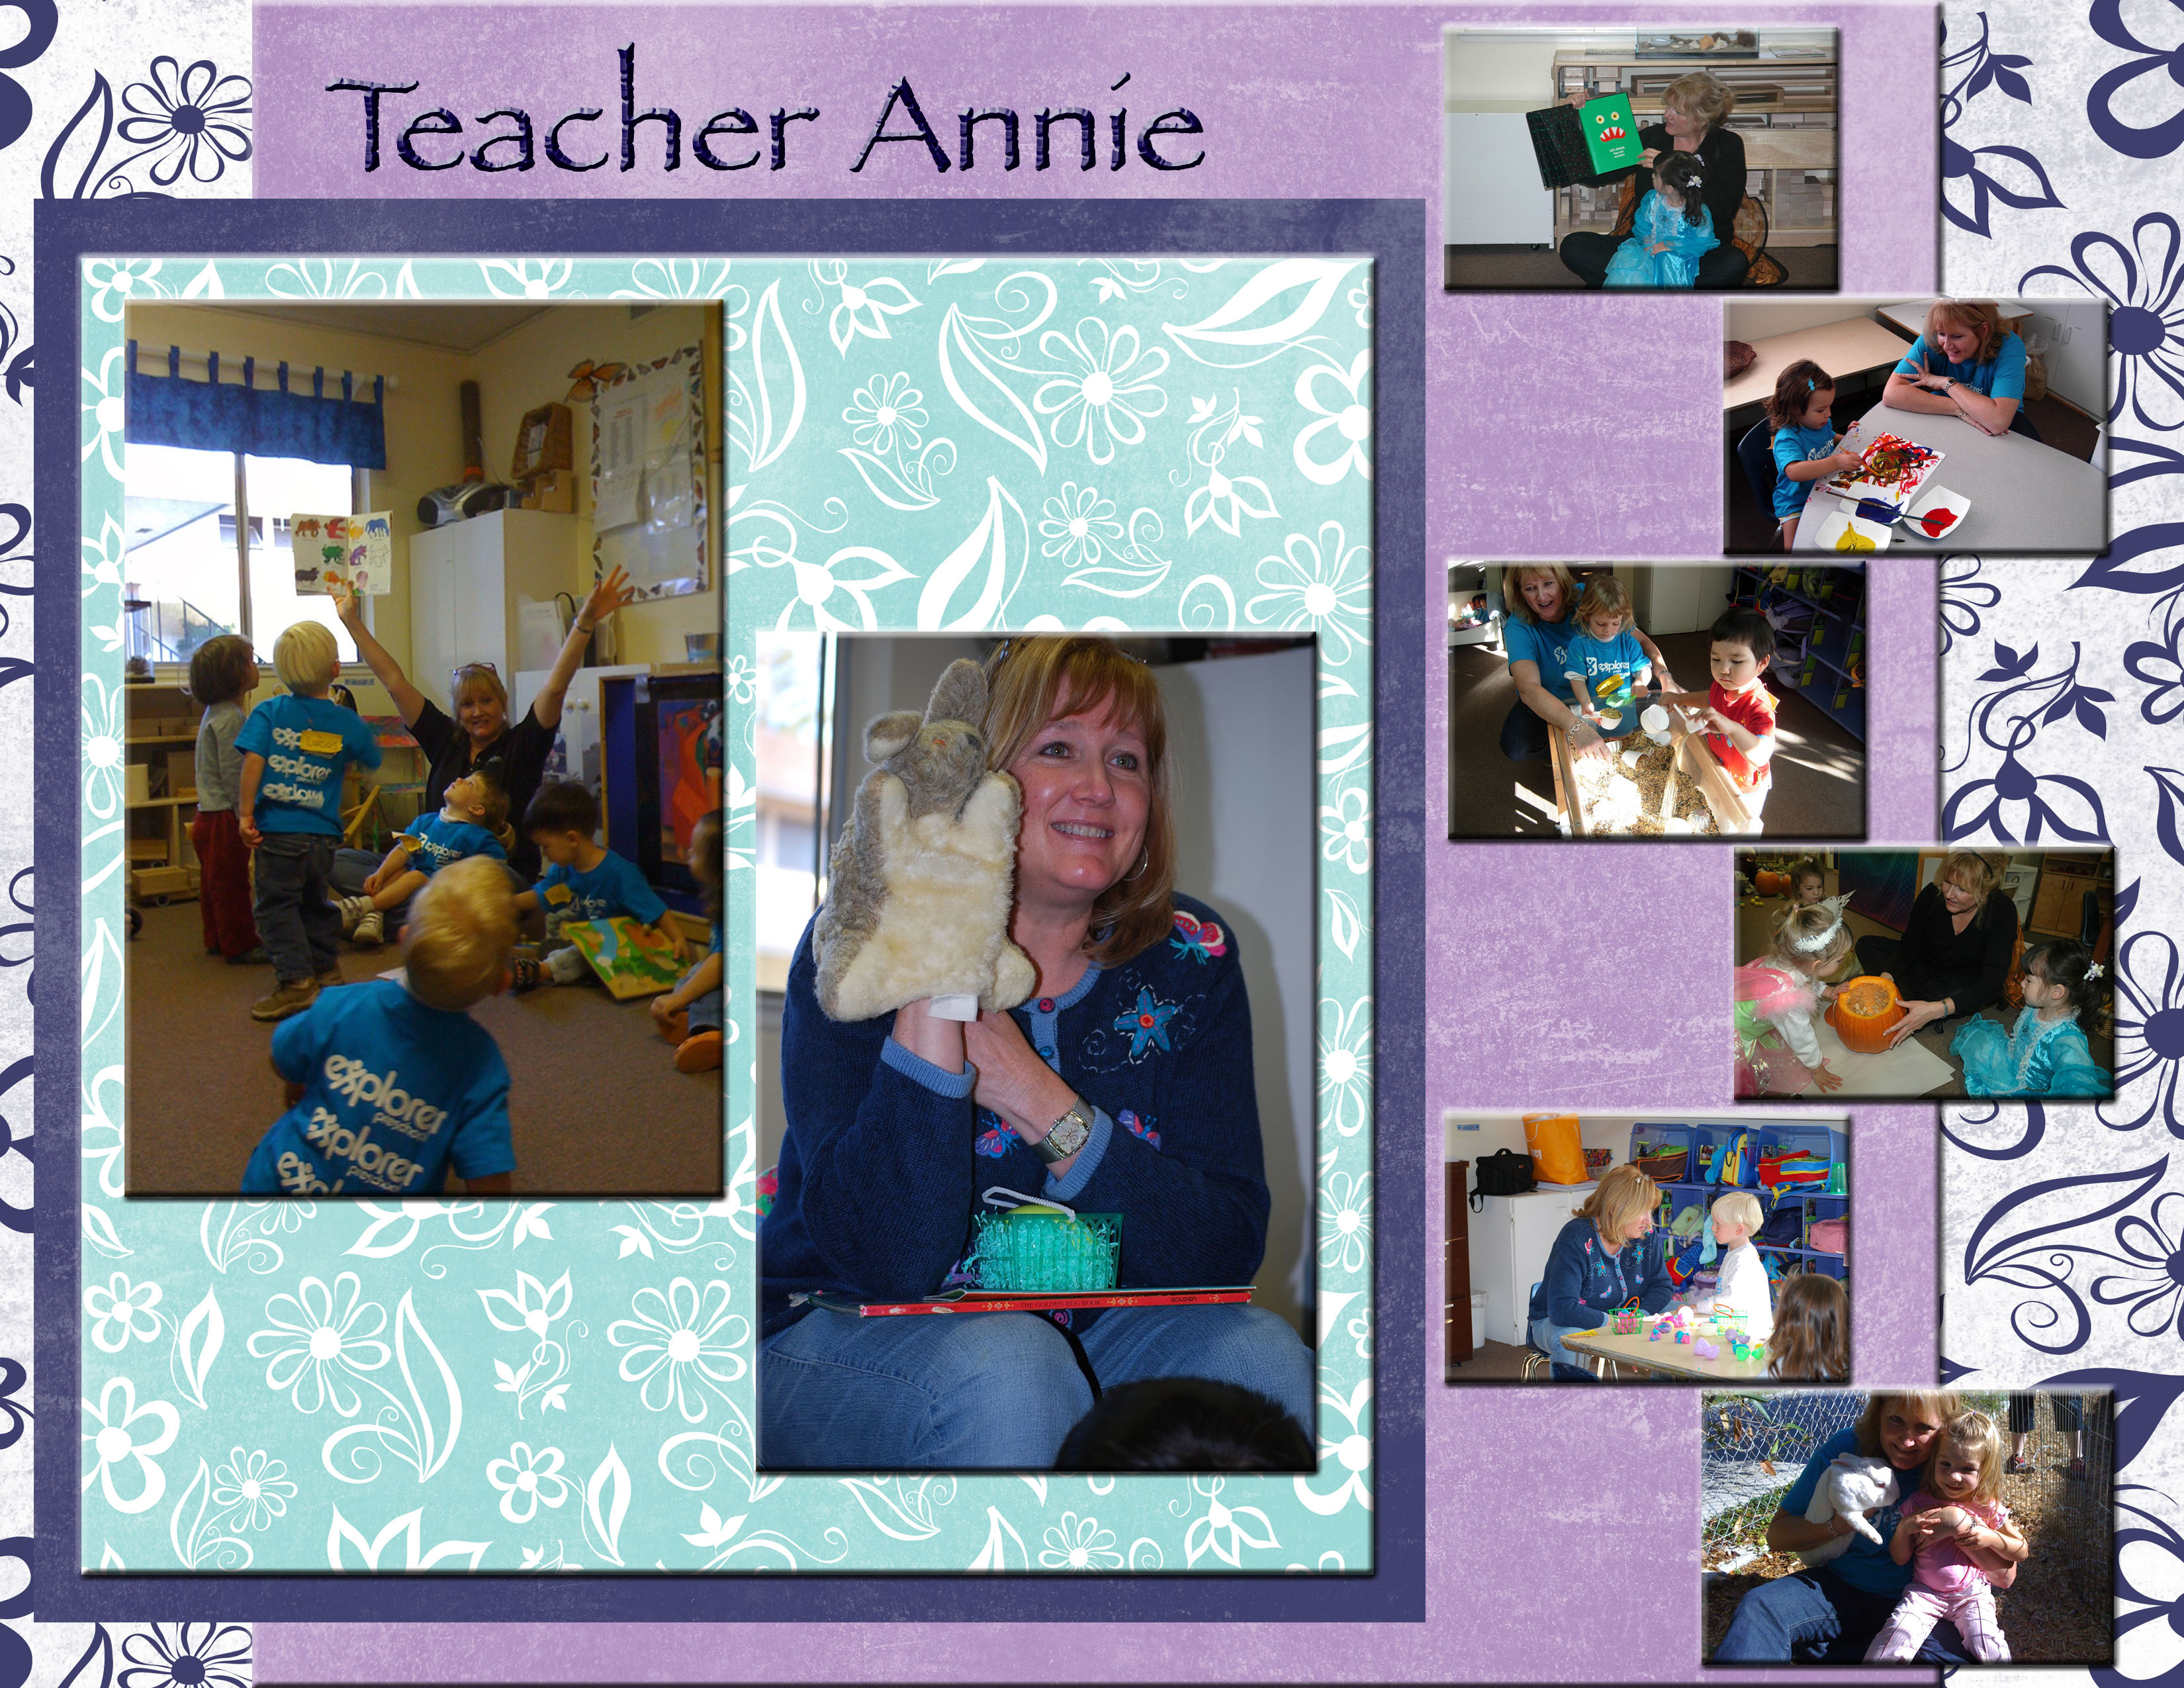 Explorer Friday 2s Teacher Annie